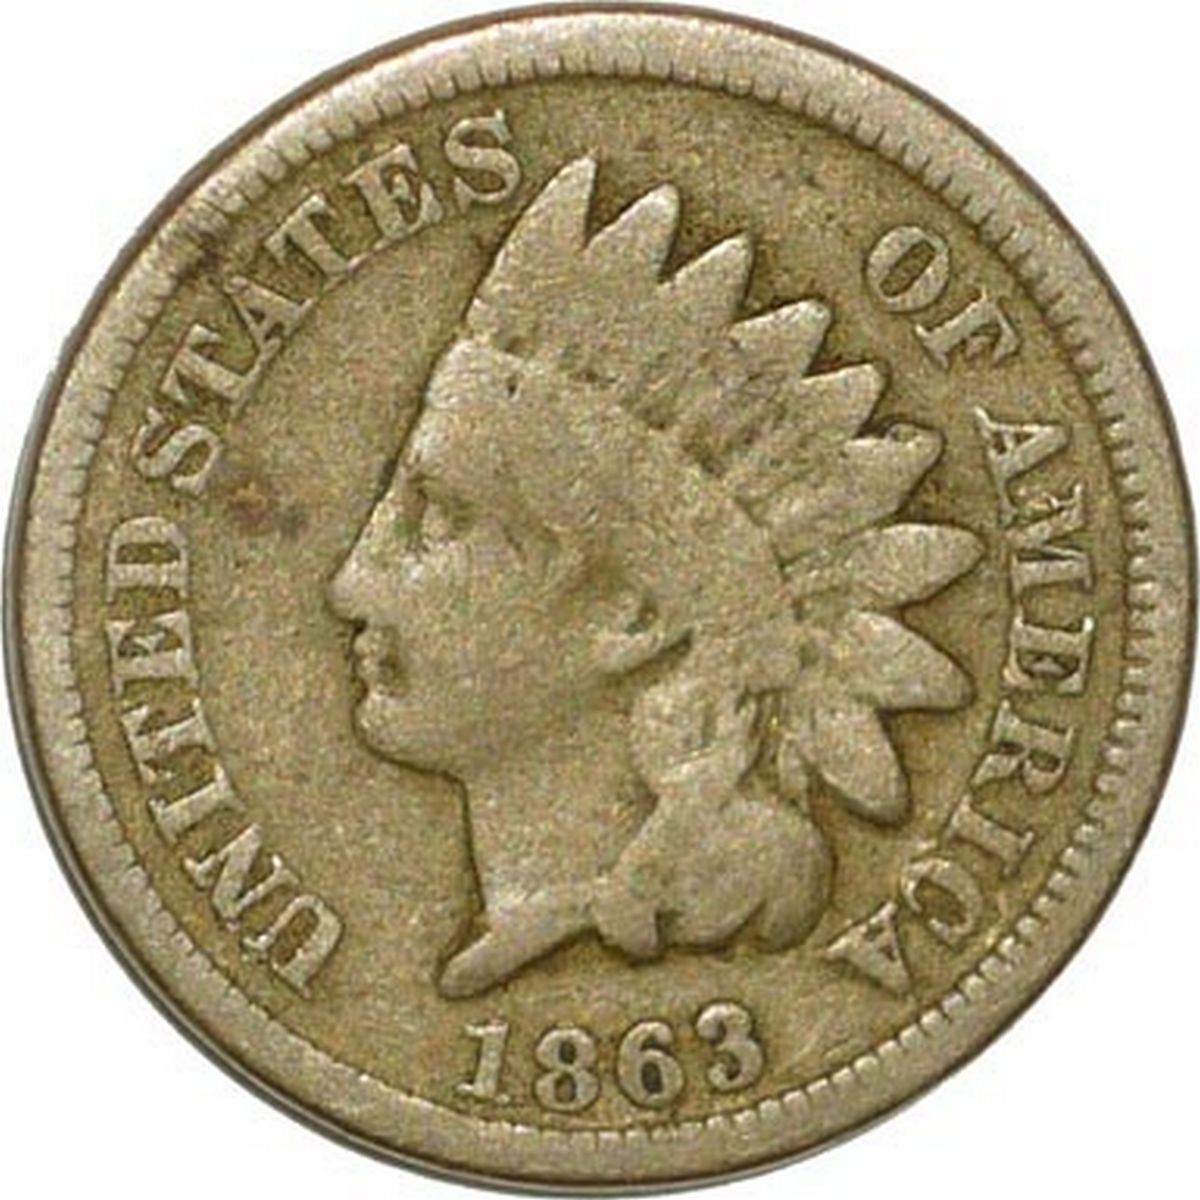 Obverse of 1863 CUD-042 - Indian Head Penny - Photo by David Poliquin